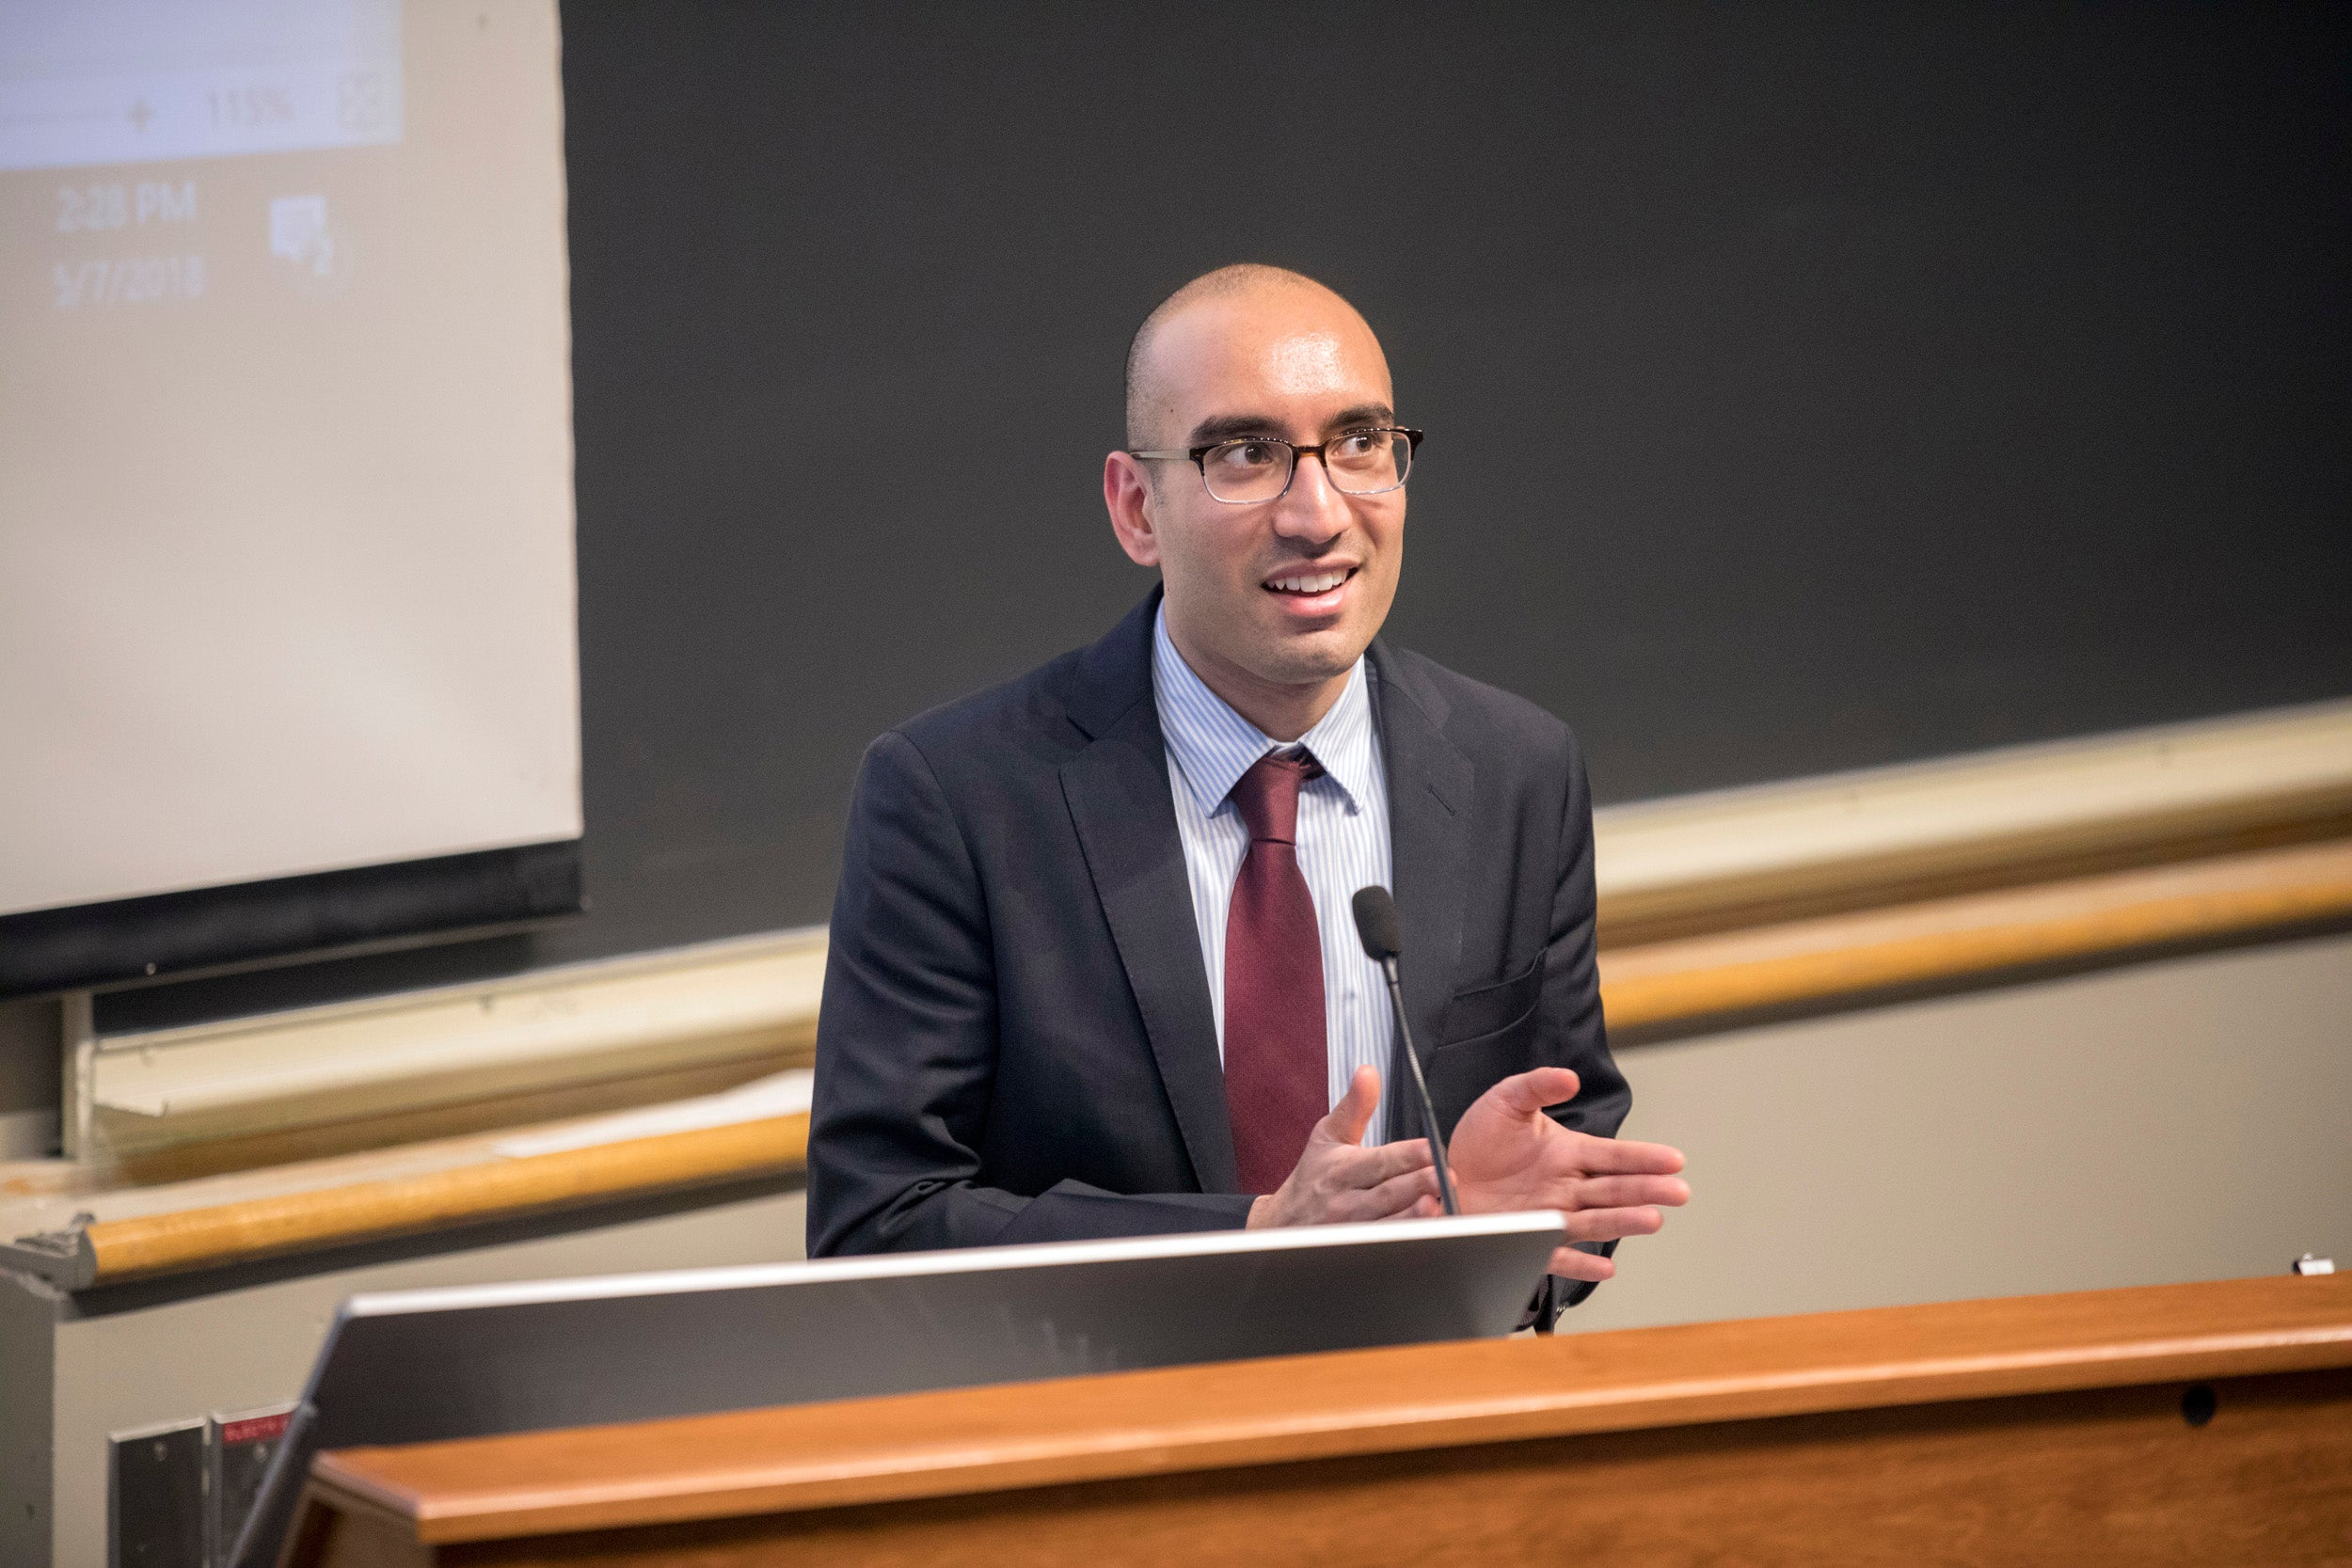 At a panel discussion at the Medical School, members of Students for Environmental Awareness in Medicine, including event planner Shadaab Kazi, gave the physicians' perspective on how environmental issues will impact human health.